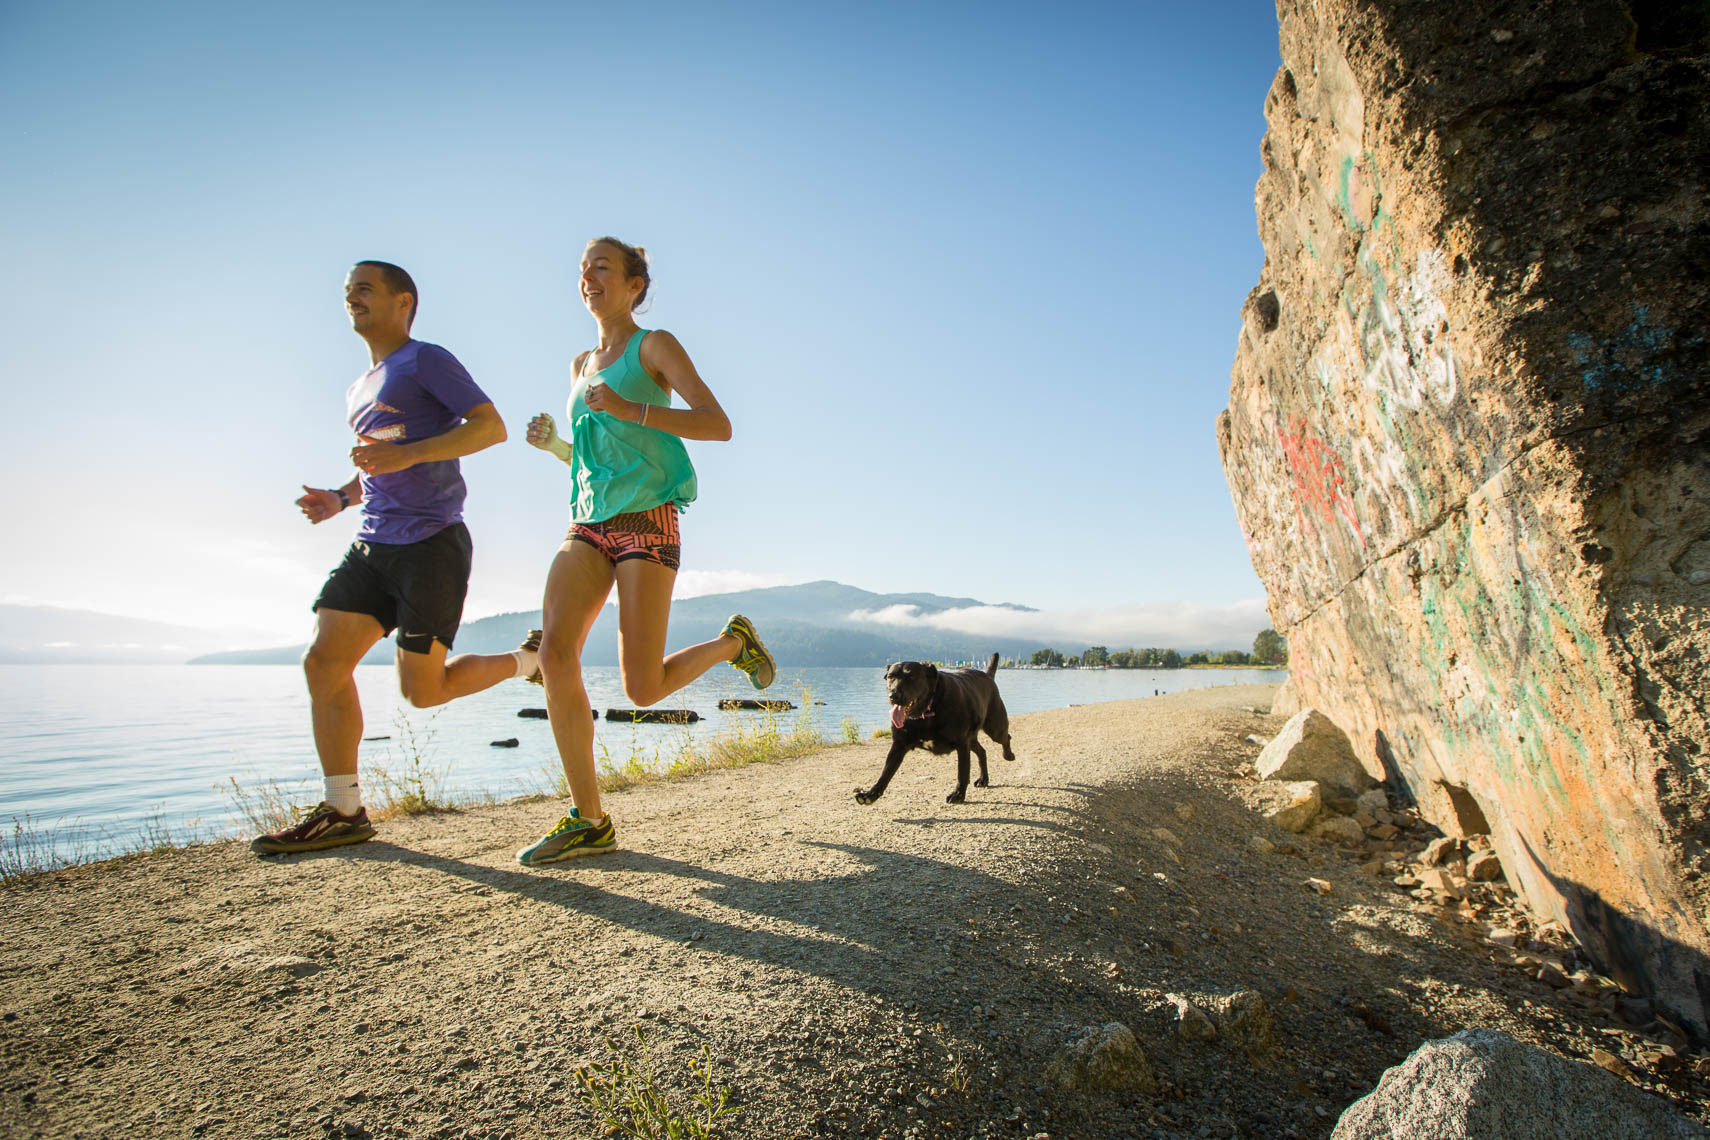 Couple Trail Running with Dog in Sand Point Idaho, Lake Pend Oreille